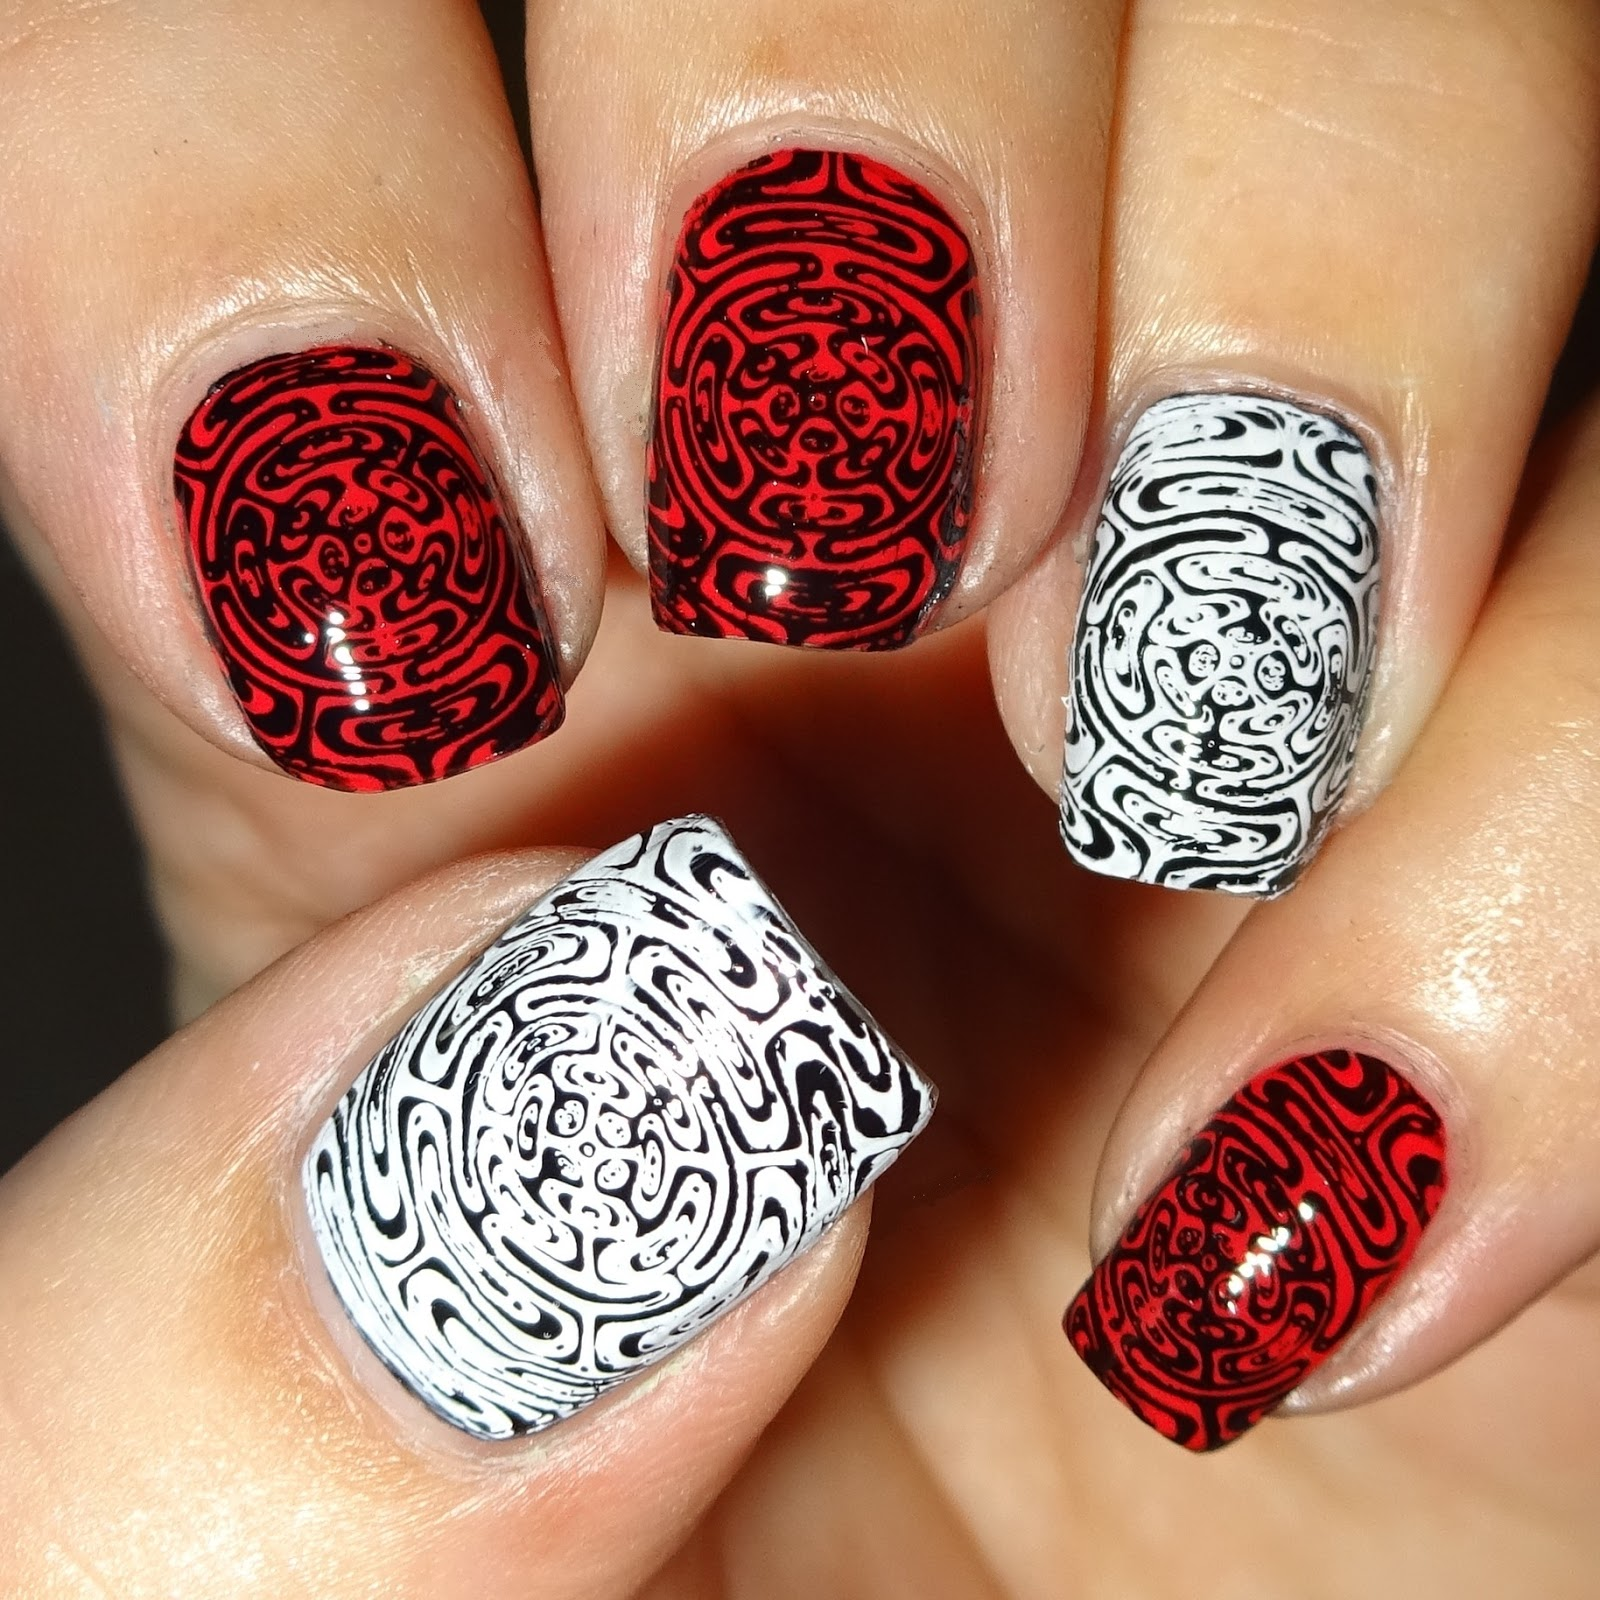 Wendys delights moyou nails stamping plate 400 optical illusion moyou nails stamping plate 400 optical illusion prinsesfo Choice Image